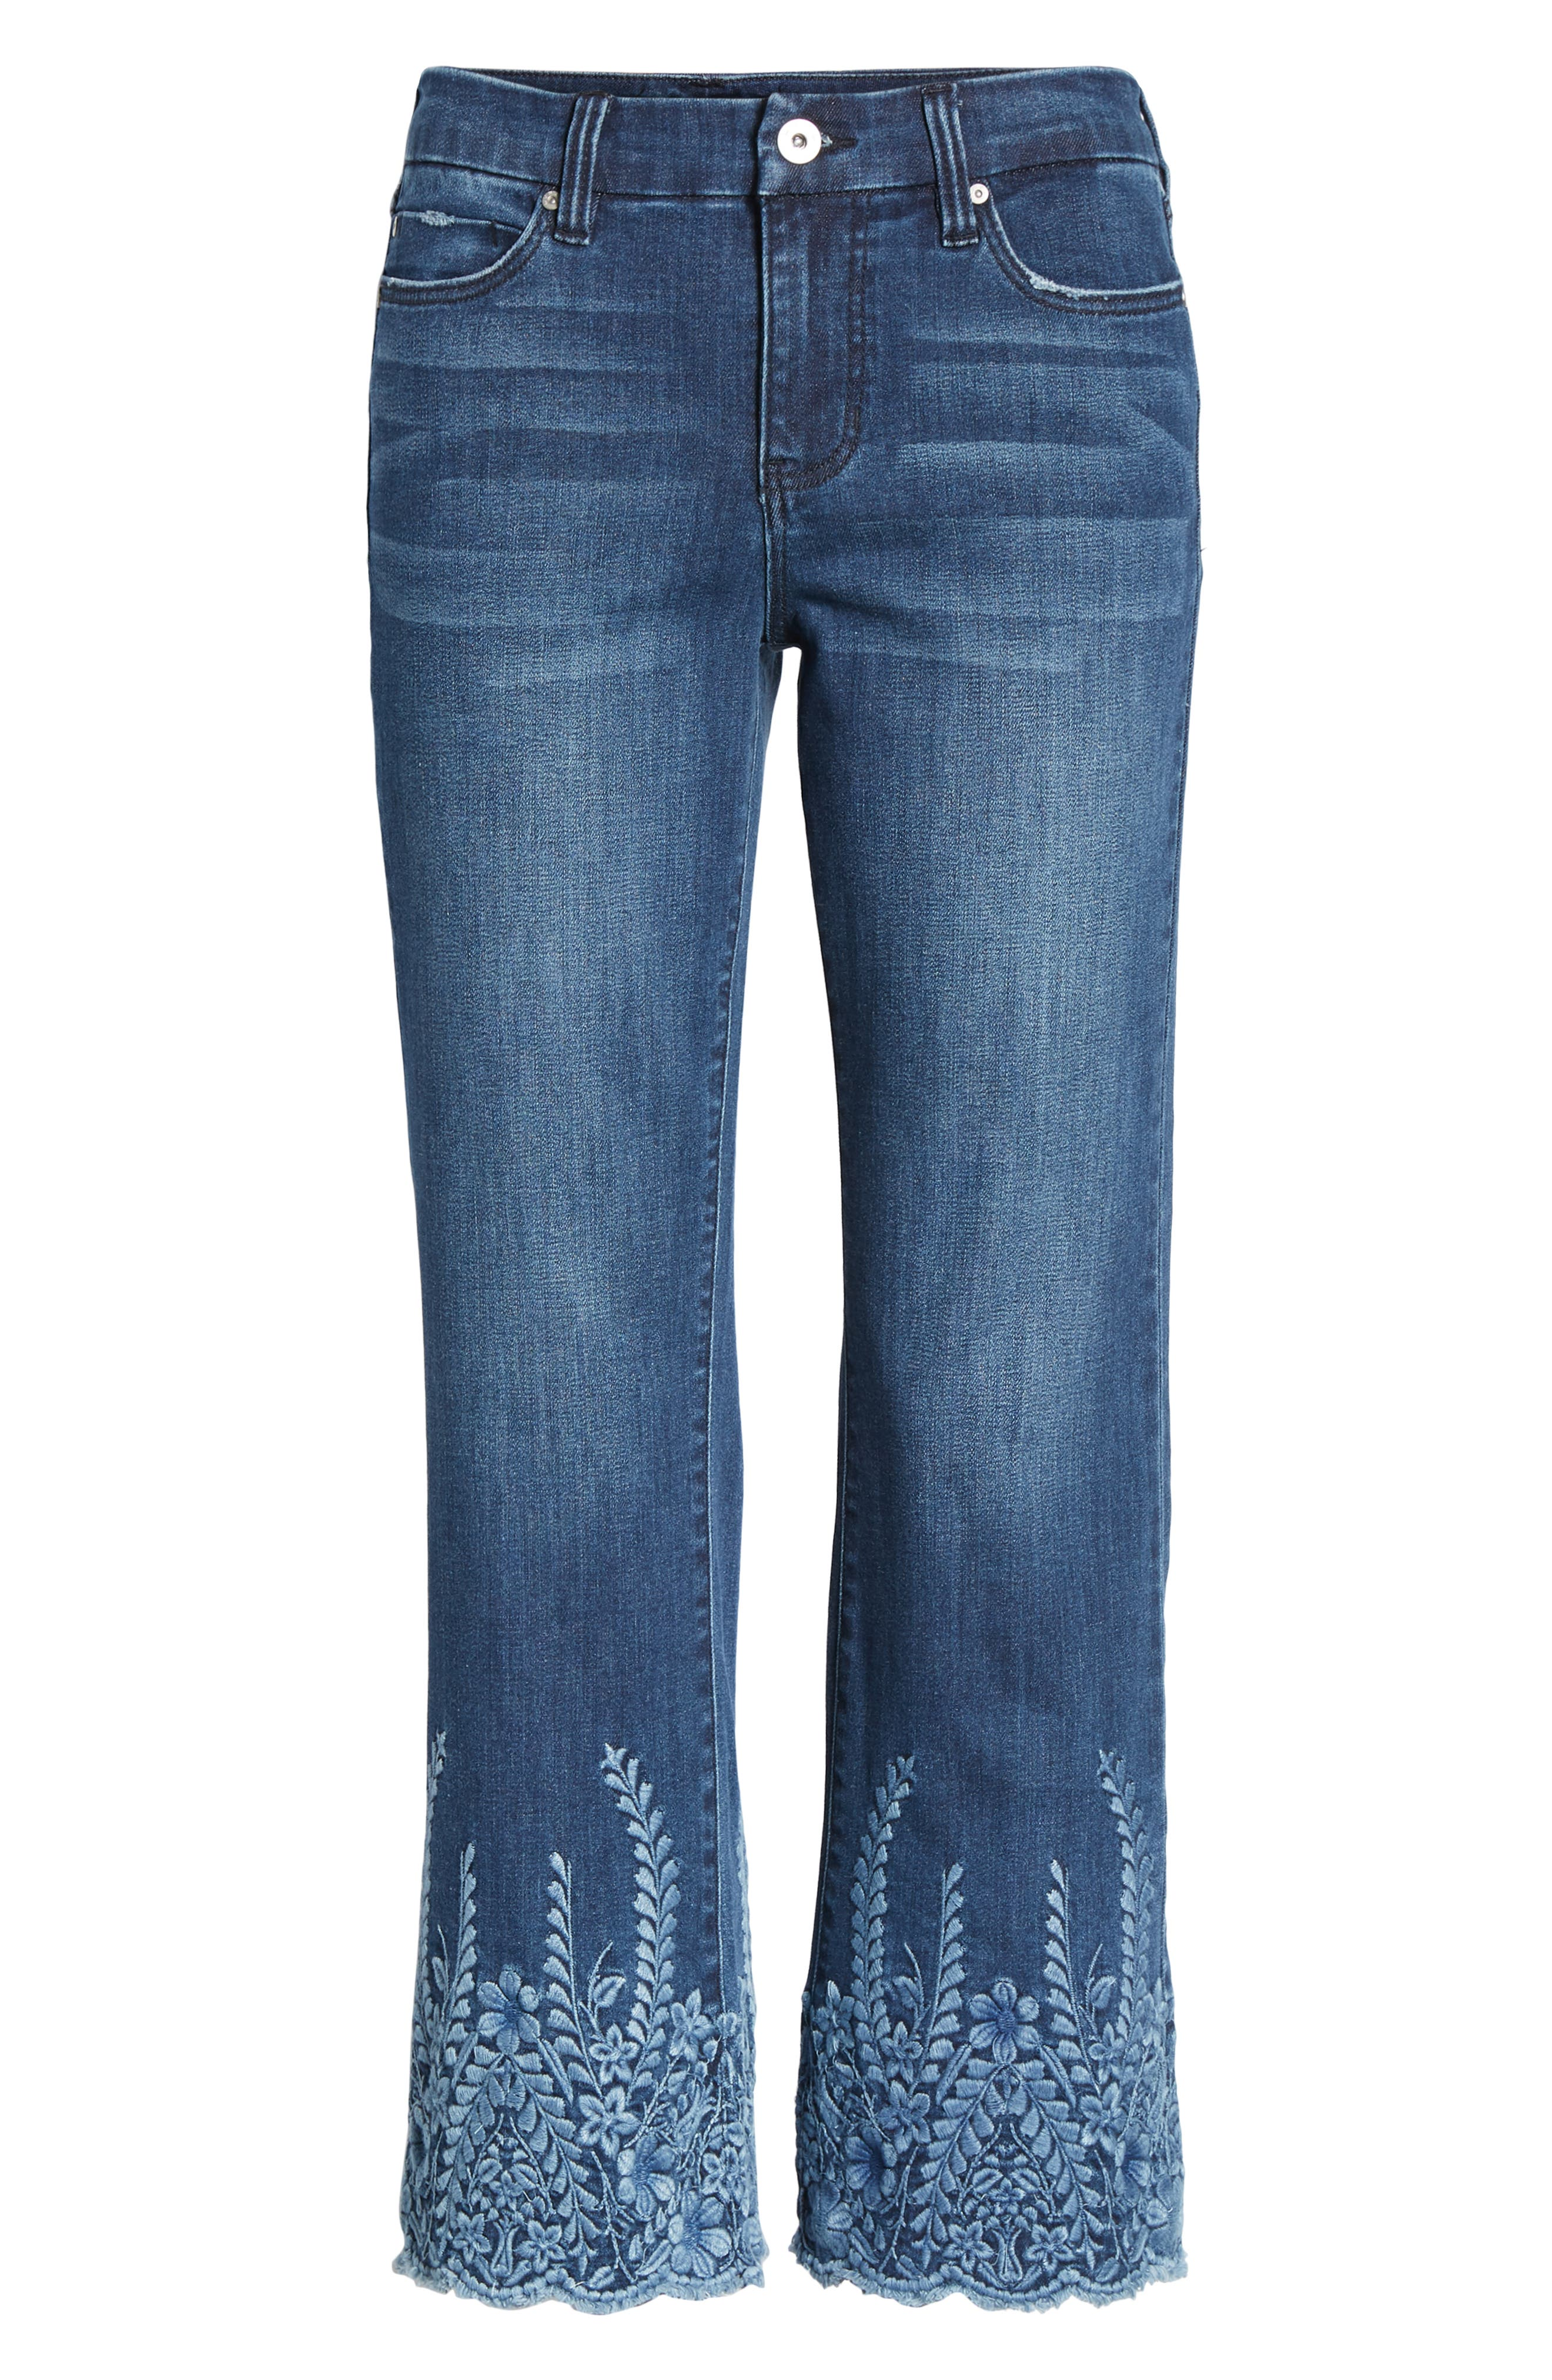 LVPL by Liverpool Coco Embroidered Hem Crop Jeans,                             Alternate thumbnail 6, color,